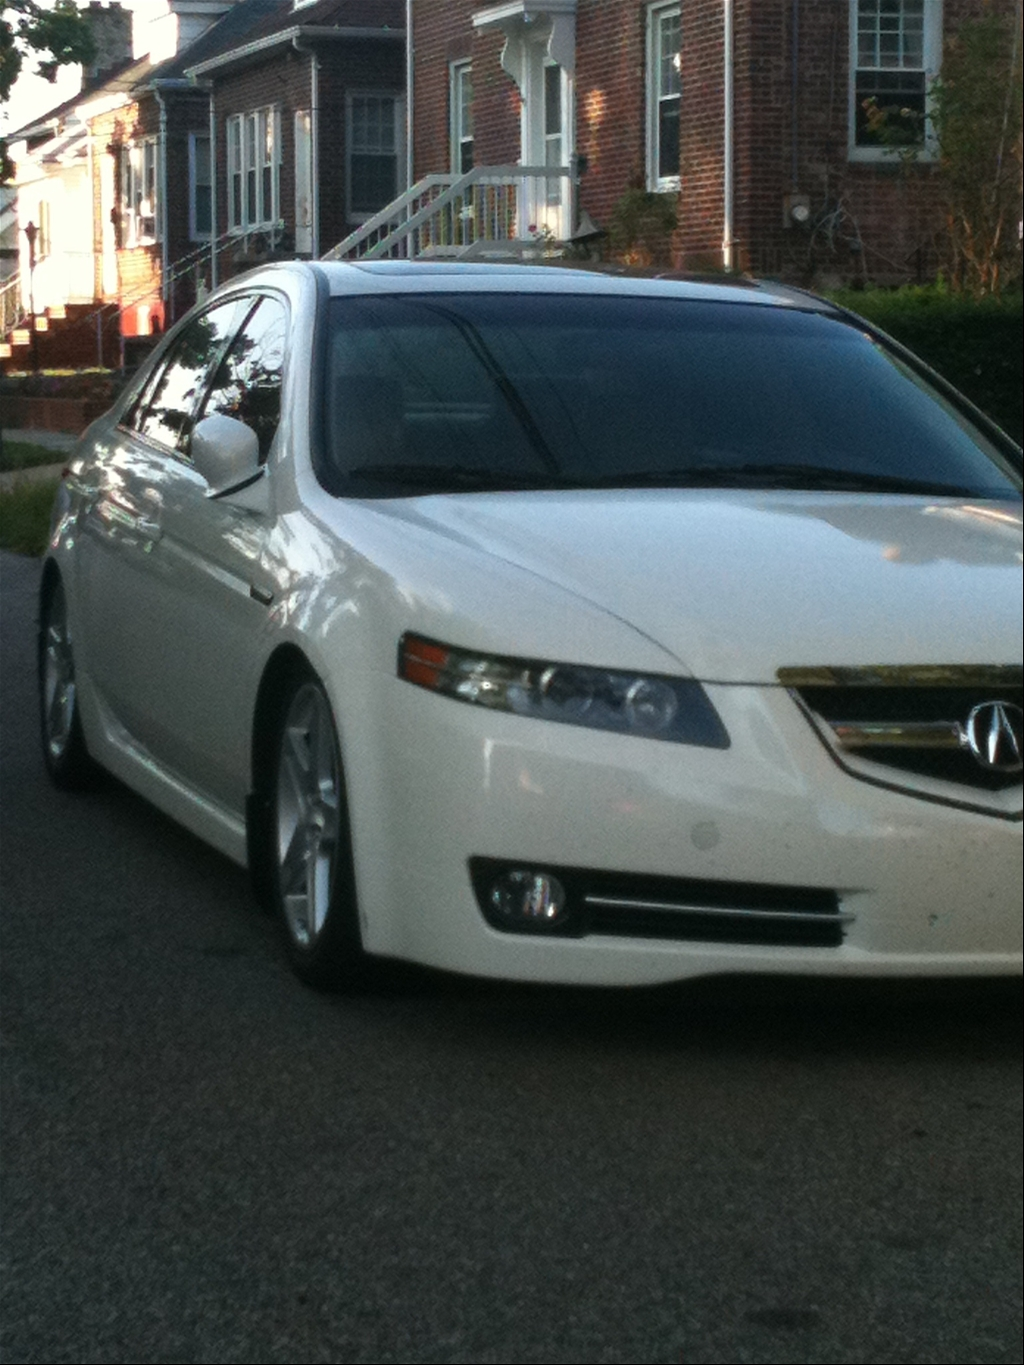 bucaro07 39 s 2005 acura tl in new york ny. Black Bedroom Furniture Sets. Home Design Ideas